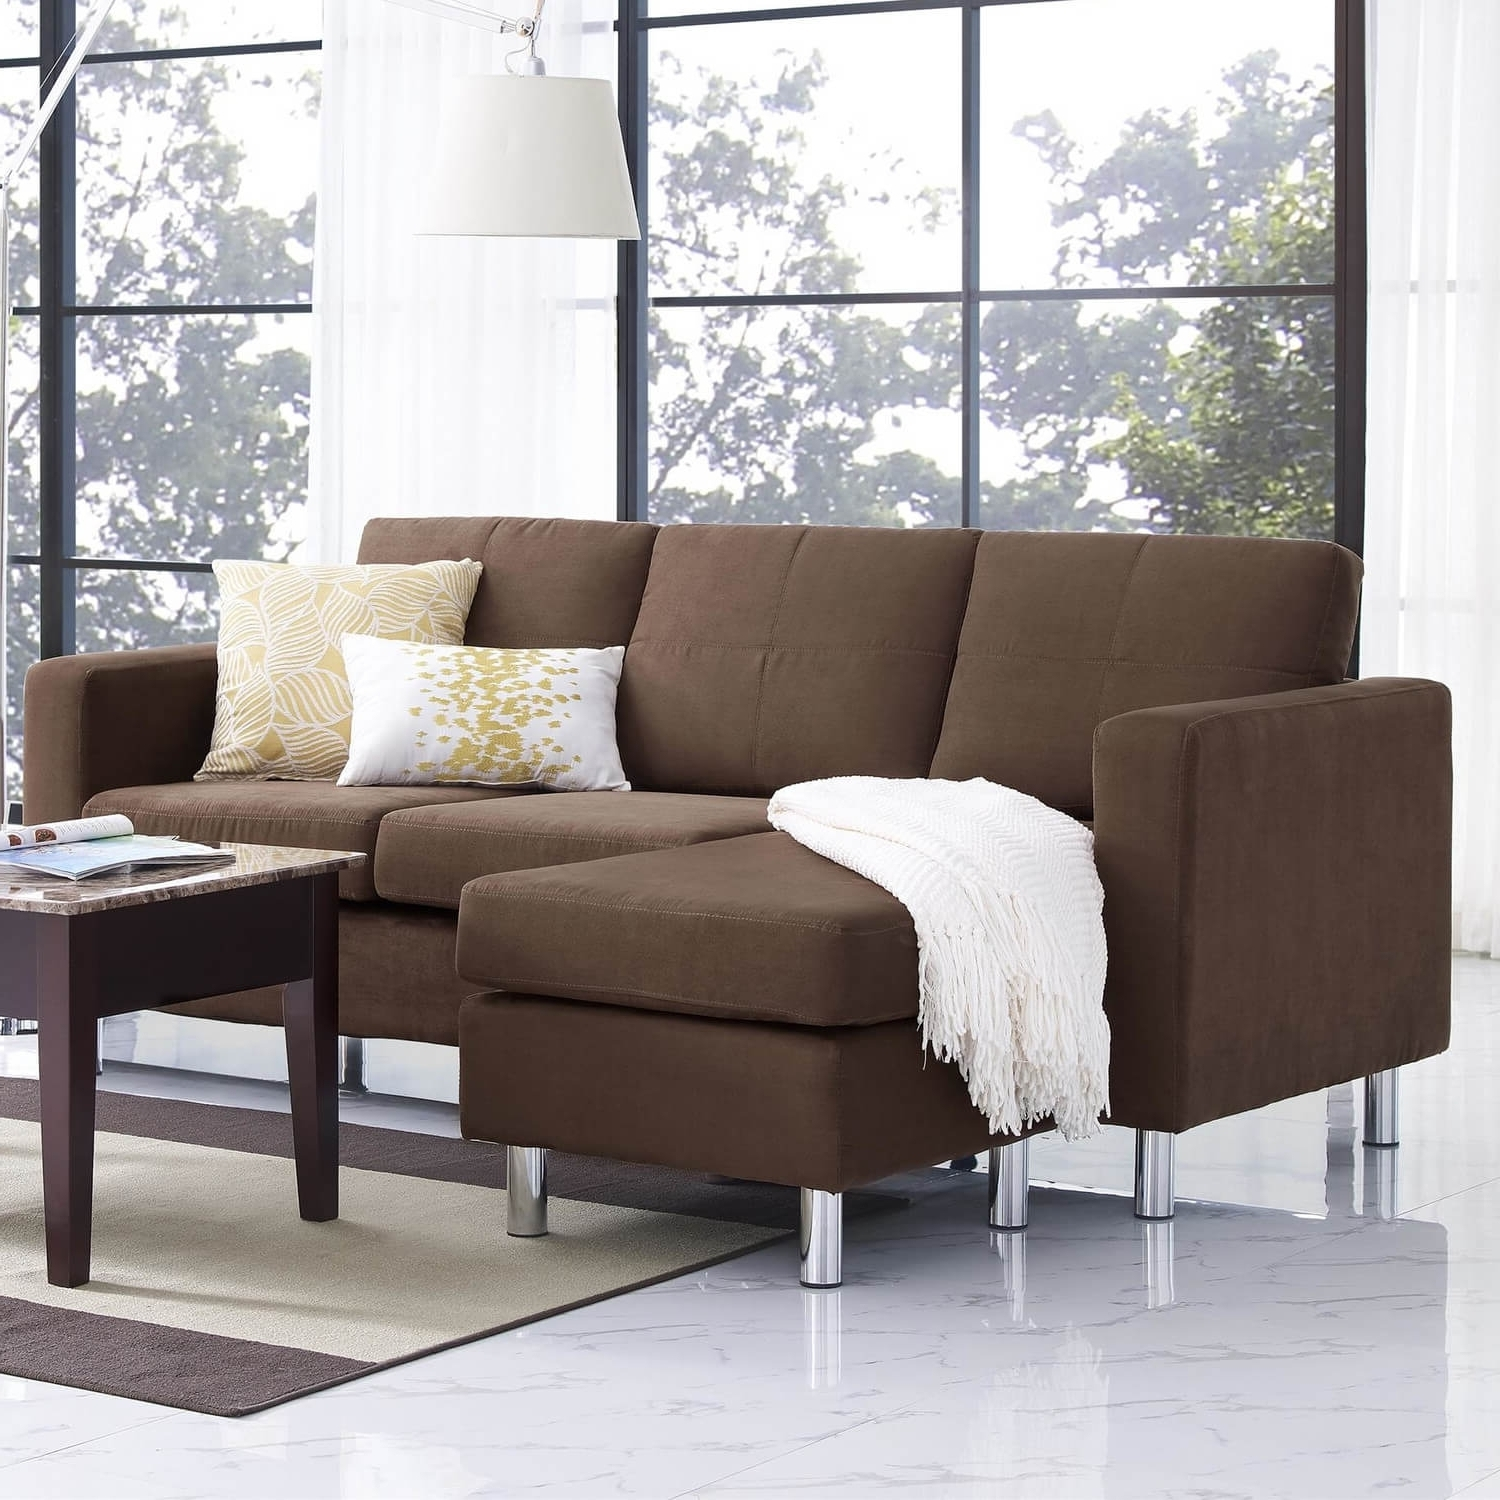 Preferred Sectional Sofa Under 500 Dollars • Sectional Sofa For Sectional Sofas Under (View 2 of 15)